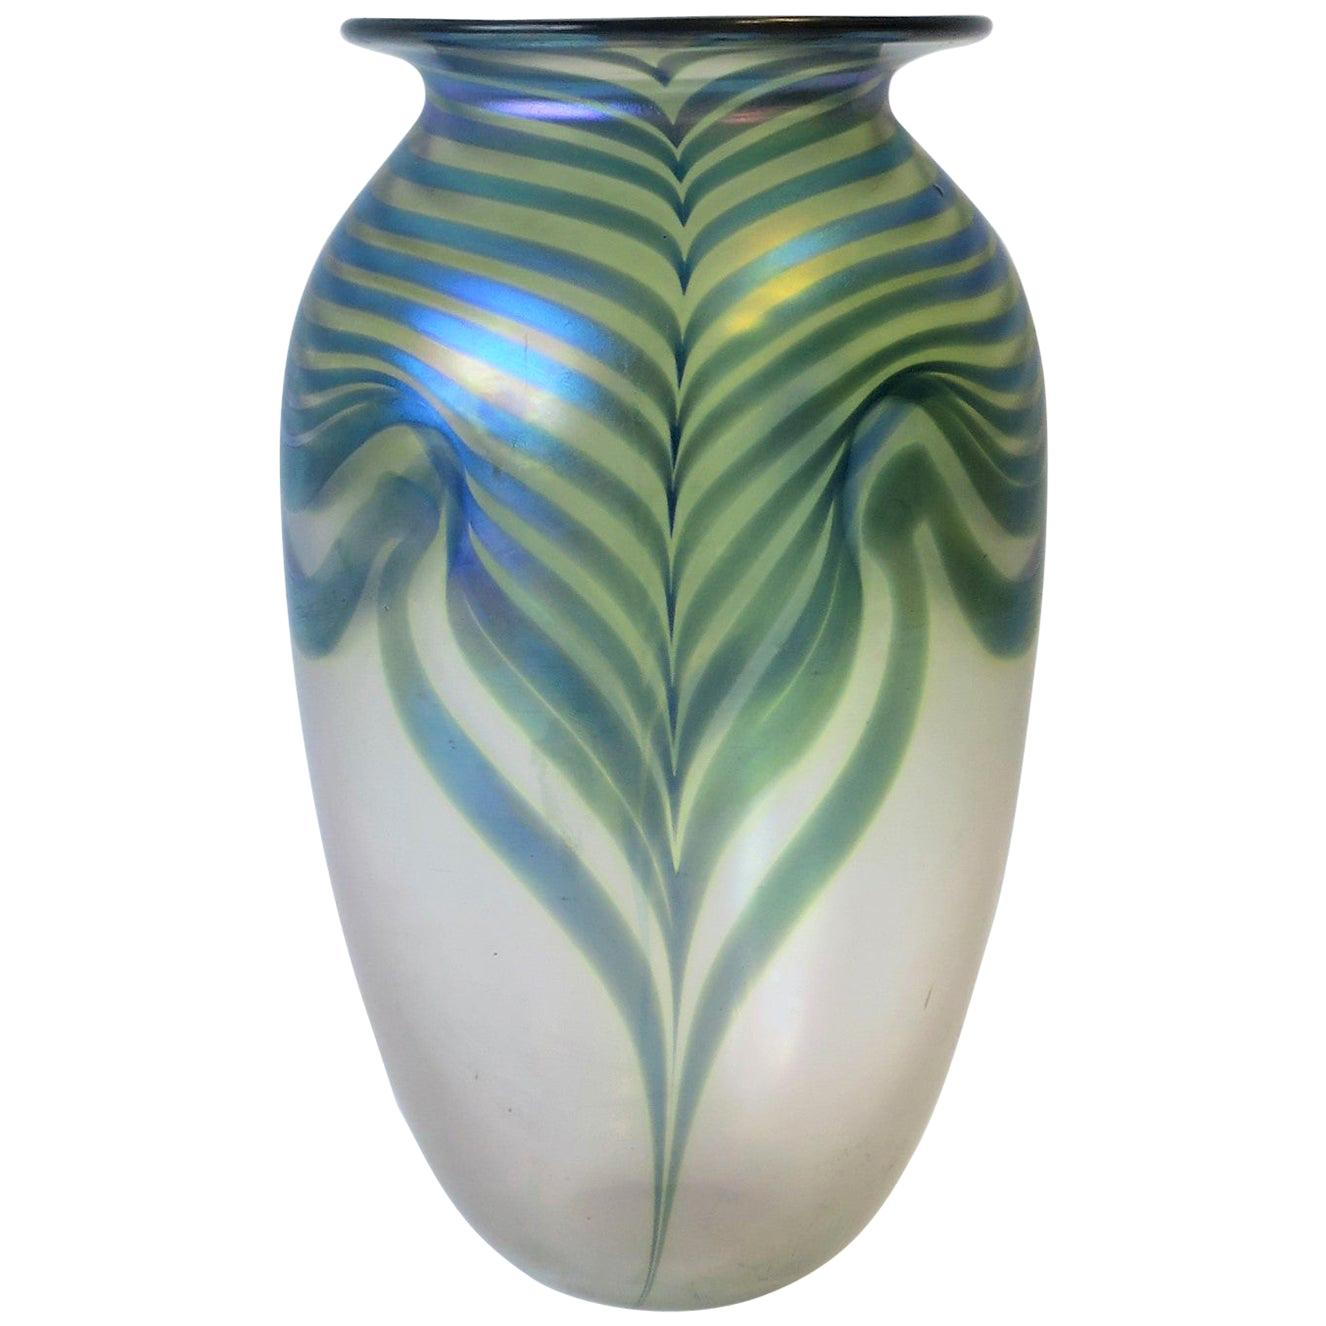 Signed Contemporary Art Glass Vase in the Art Nouveau Style, circa 1980s